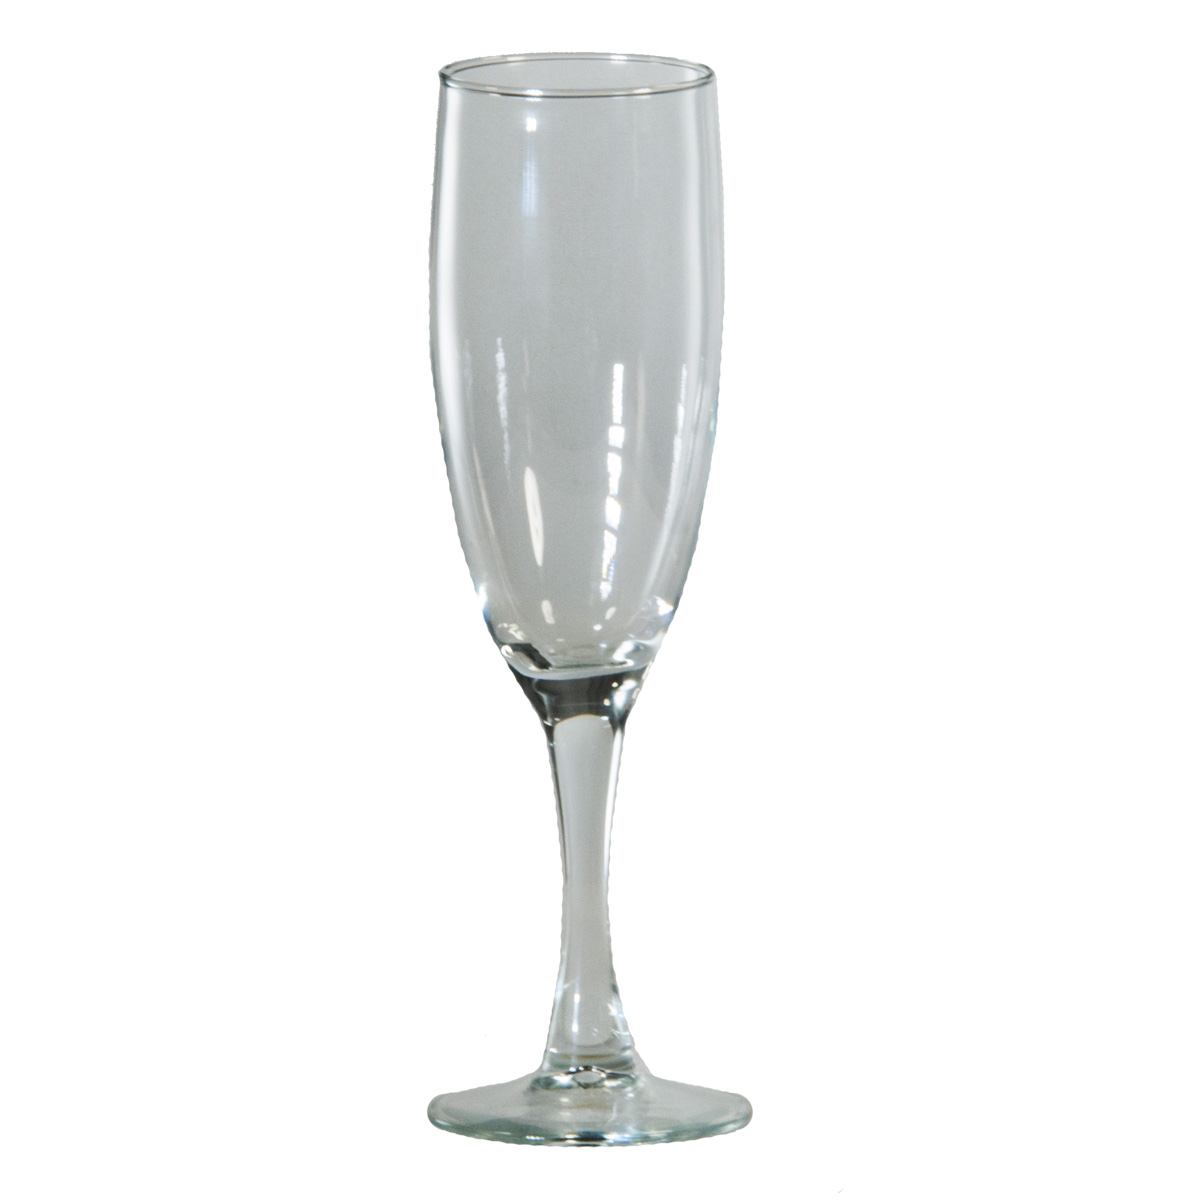 Tini tini footed martini celebrations party rentals - Fluted wine glasses ...